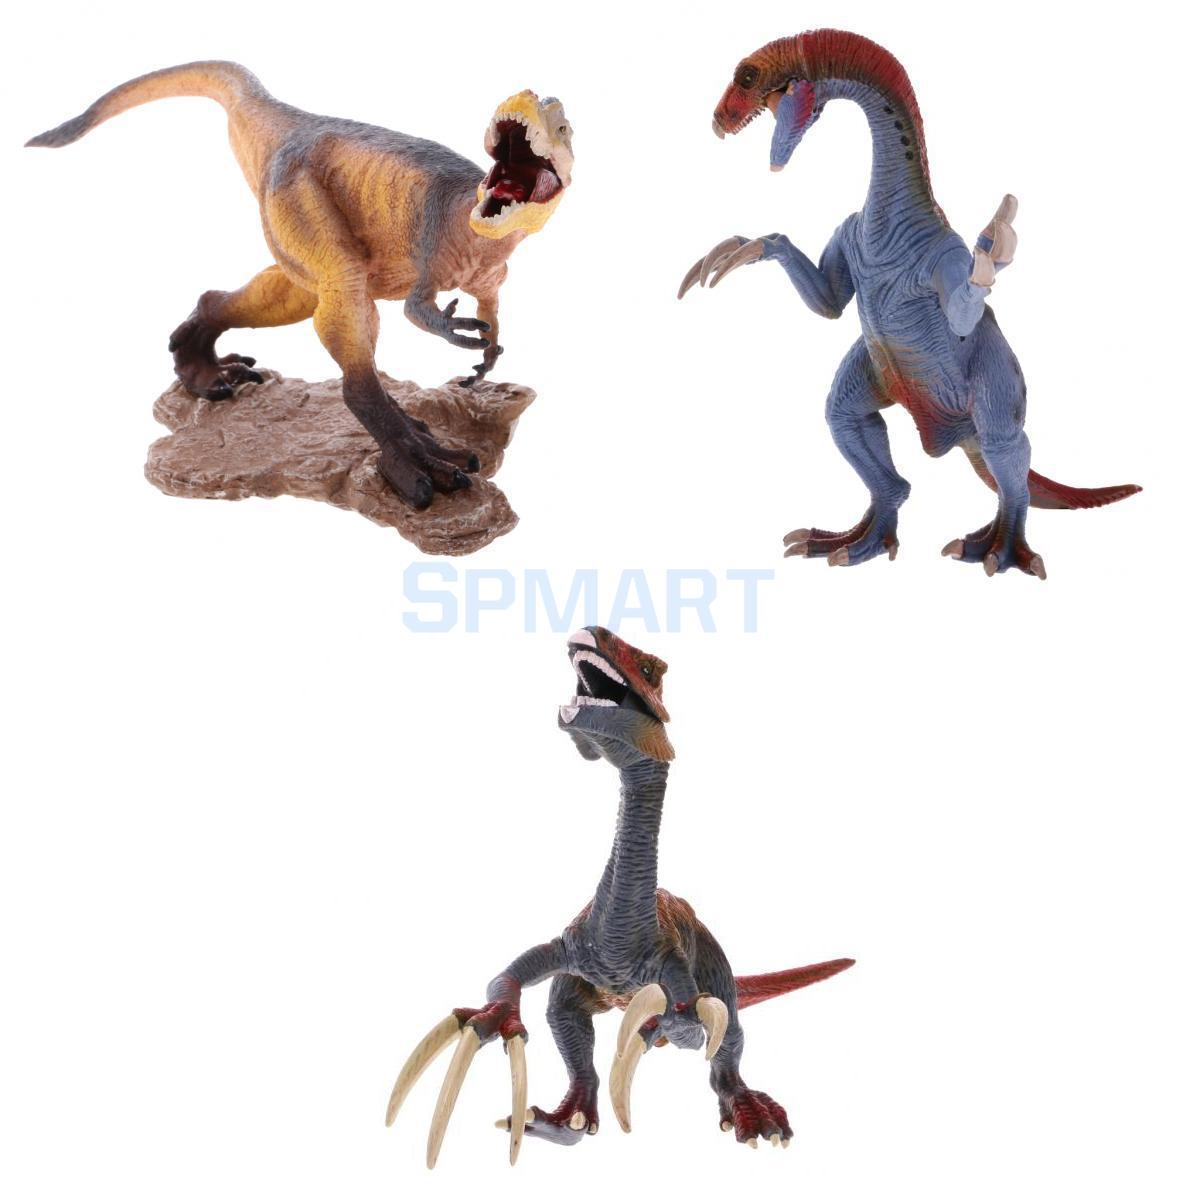 Plastic Dinosaur Figure Model Action Figures Toys Yu Wang Dinosaur+Standing Therizinosaurus+Attacking Therizinosaurus 12pcs lot dinosaur toy set plastic dinosaur world play toys dinosaur model action